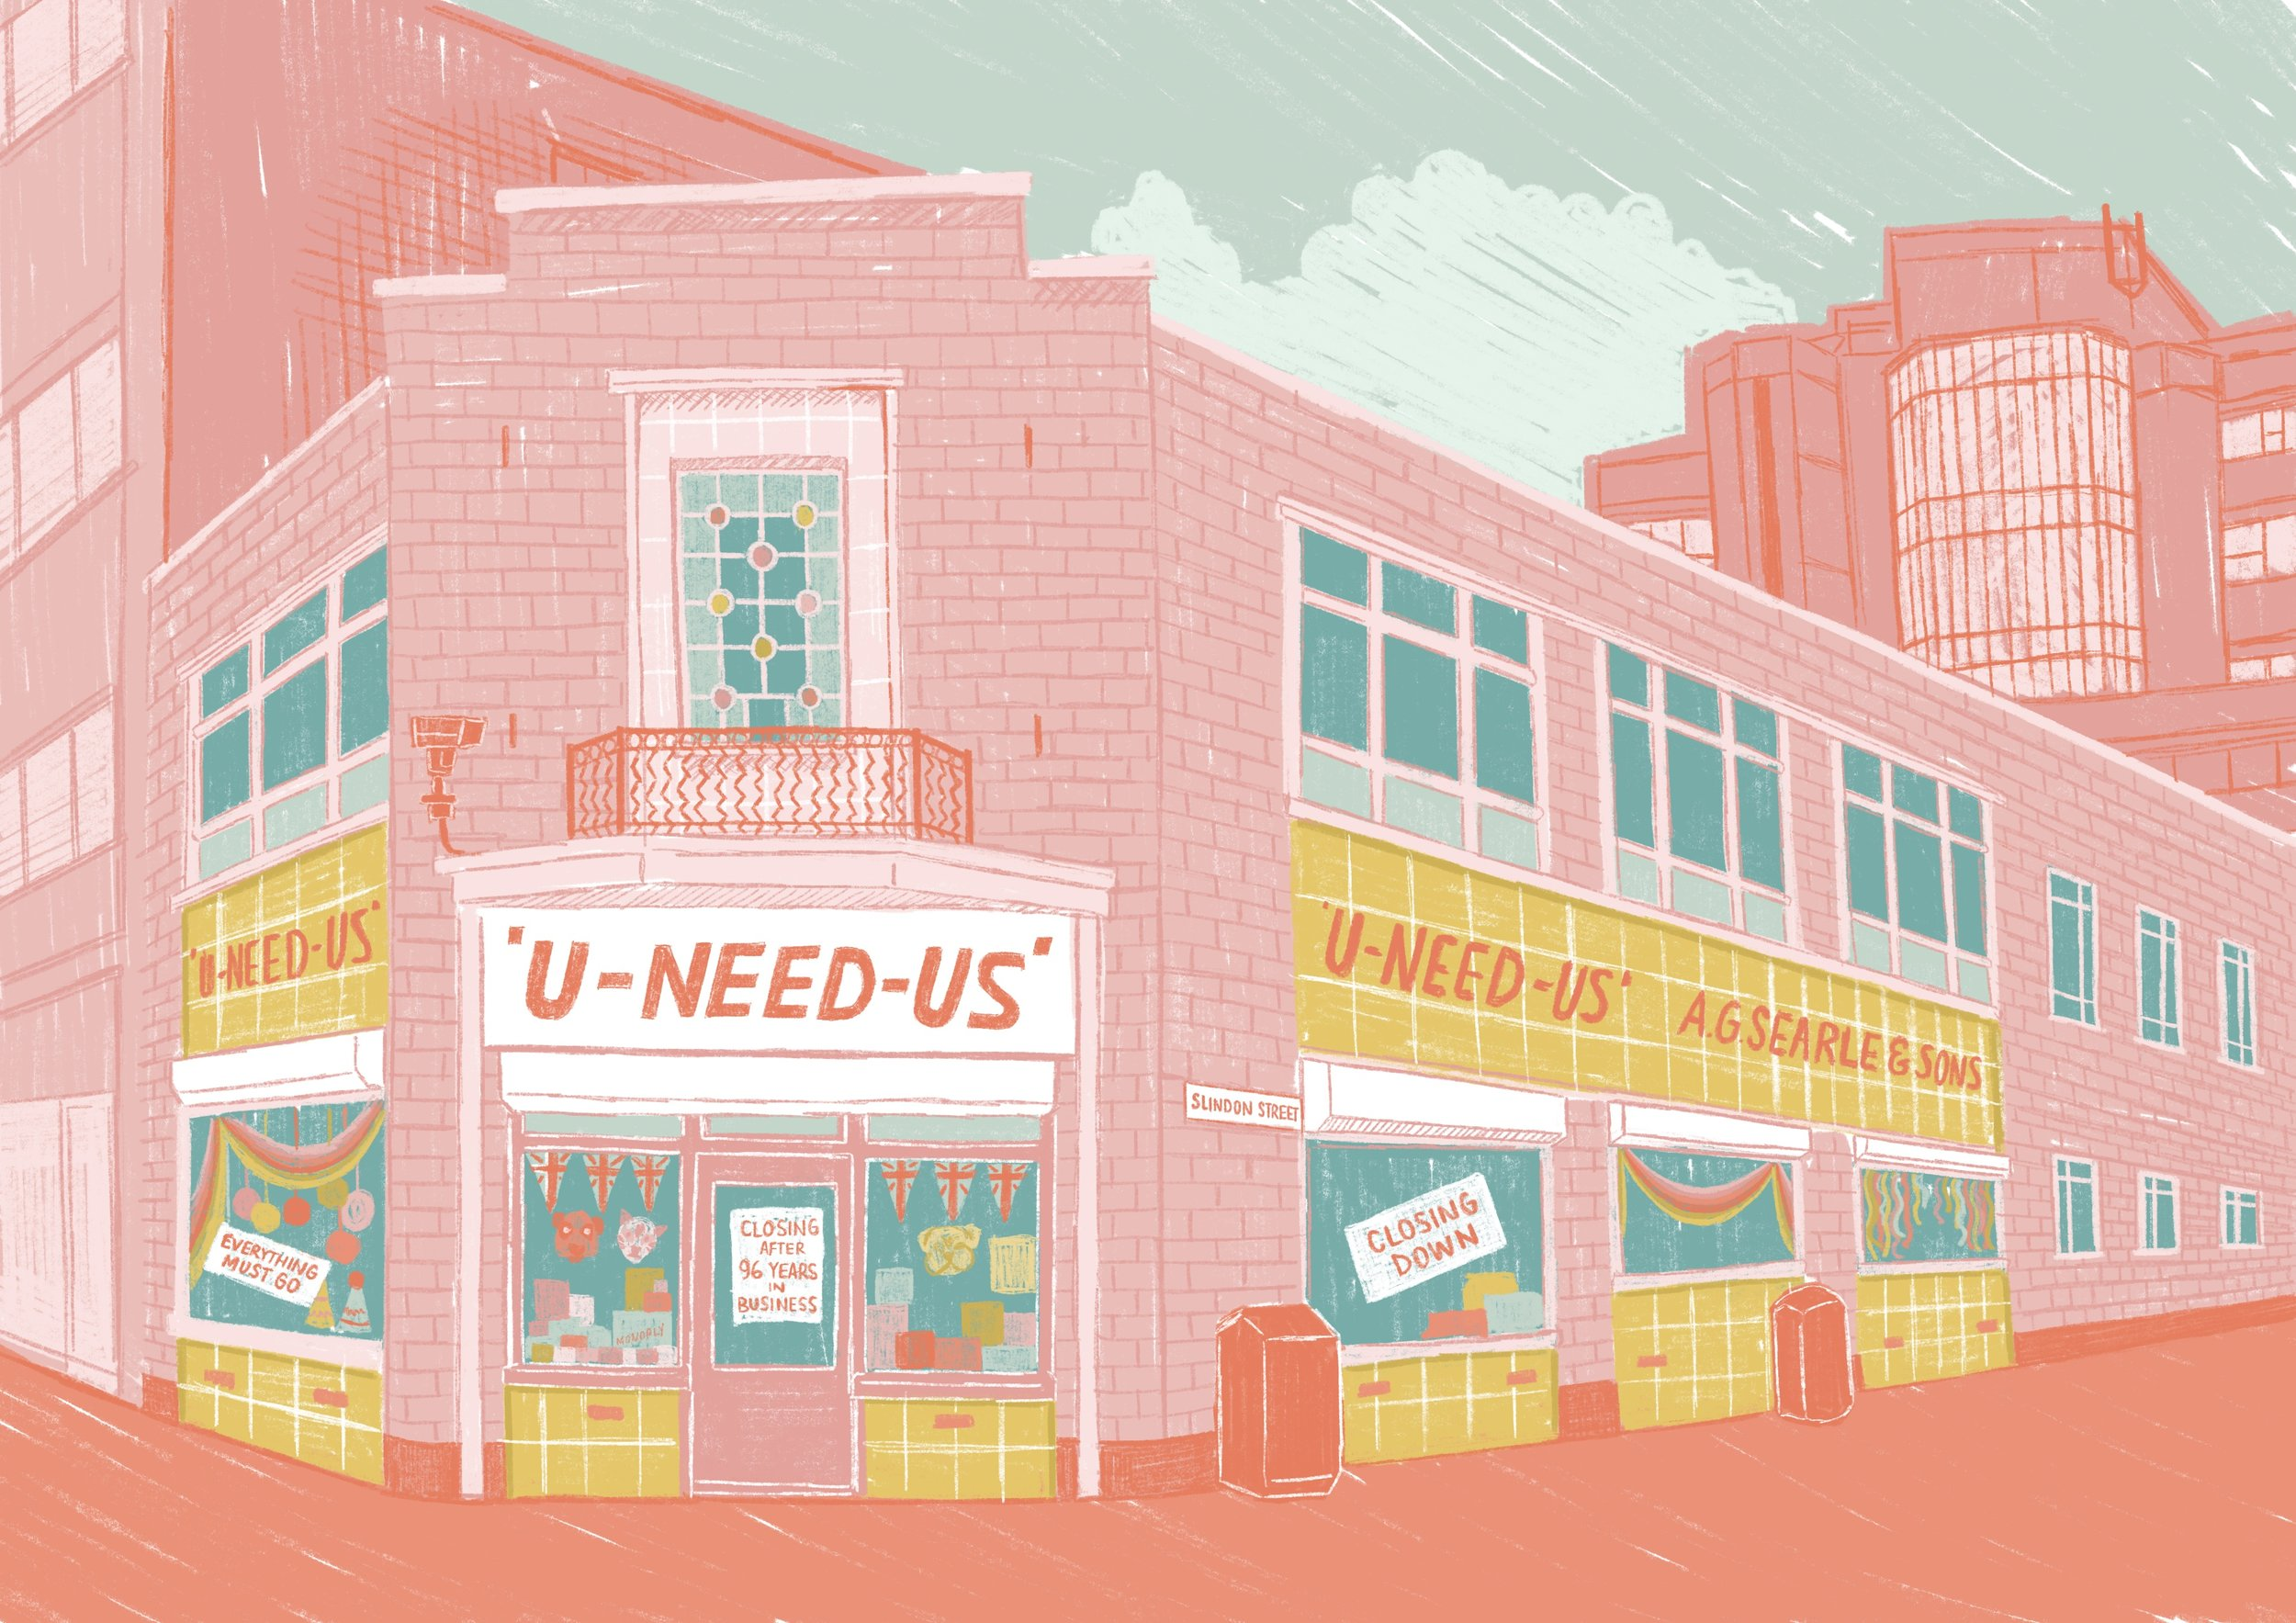 Local Shops Project - U-Need-Us